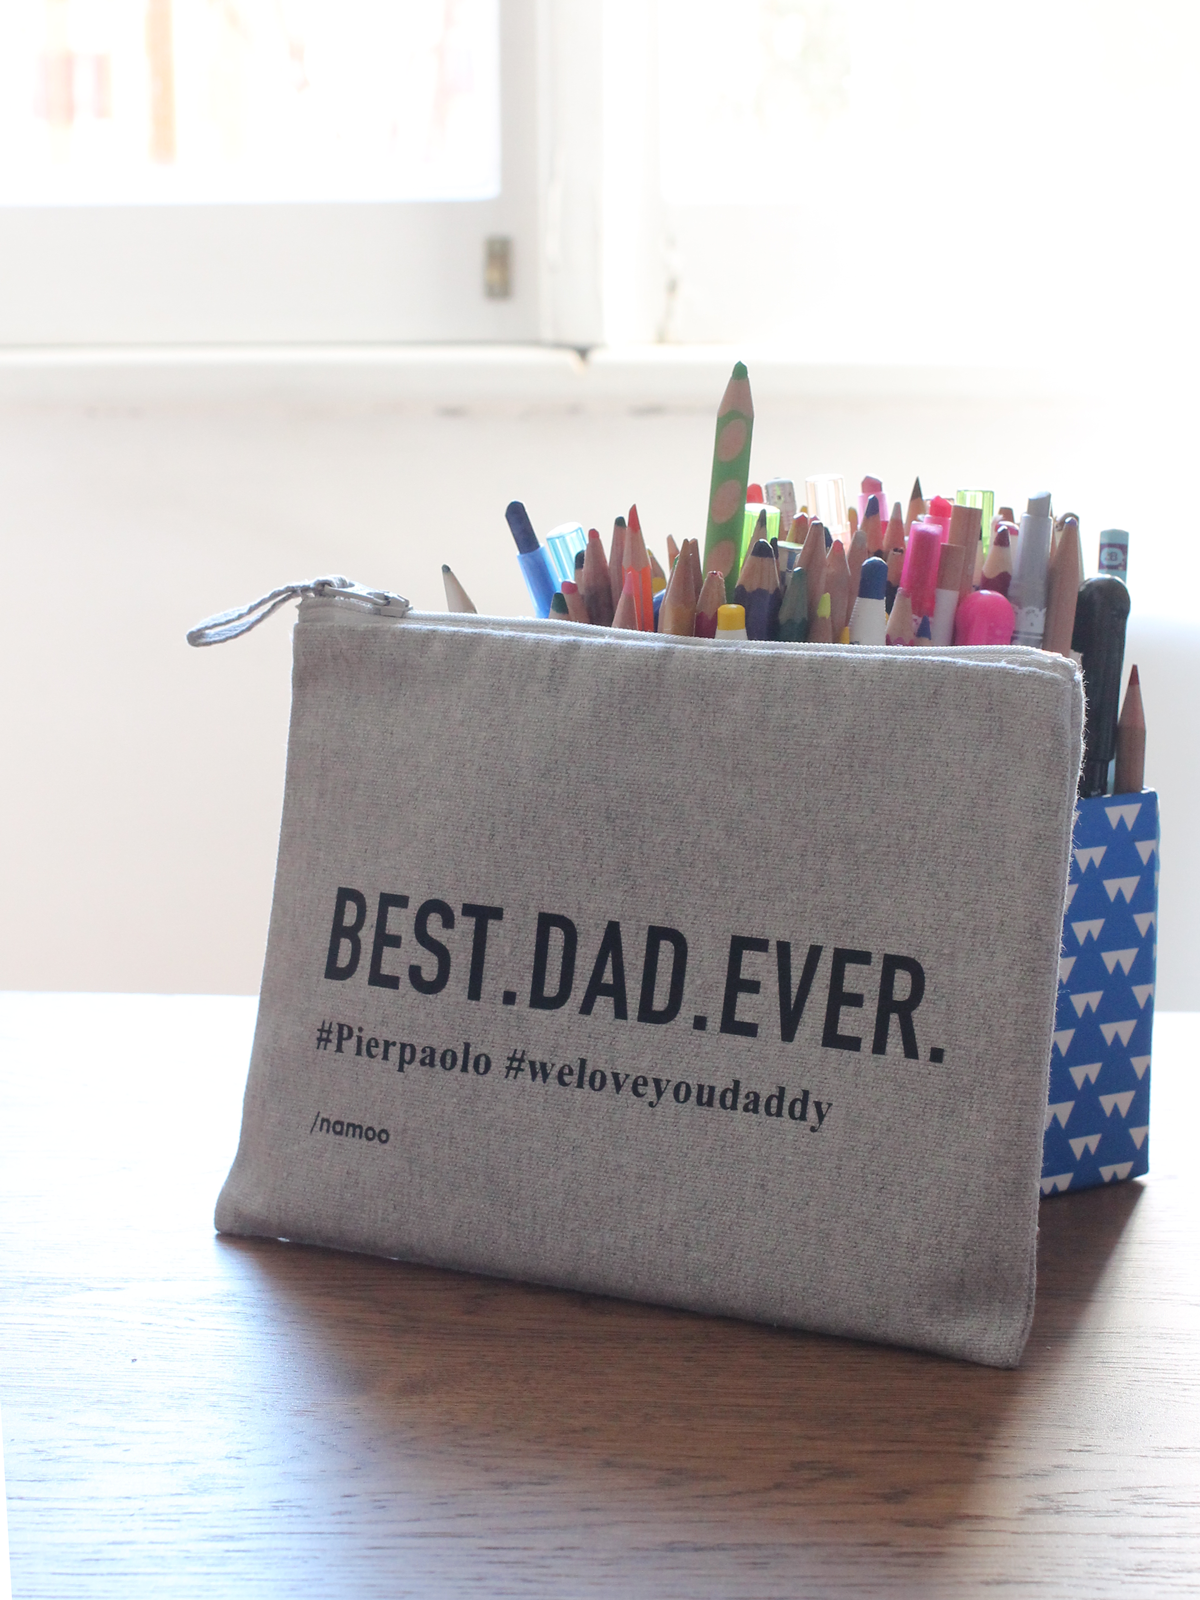 Pochette in tela / BEST.DAD.EVER.